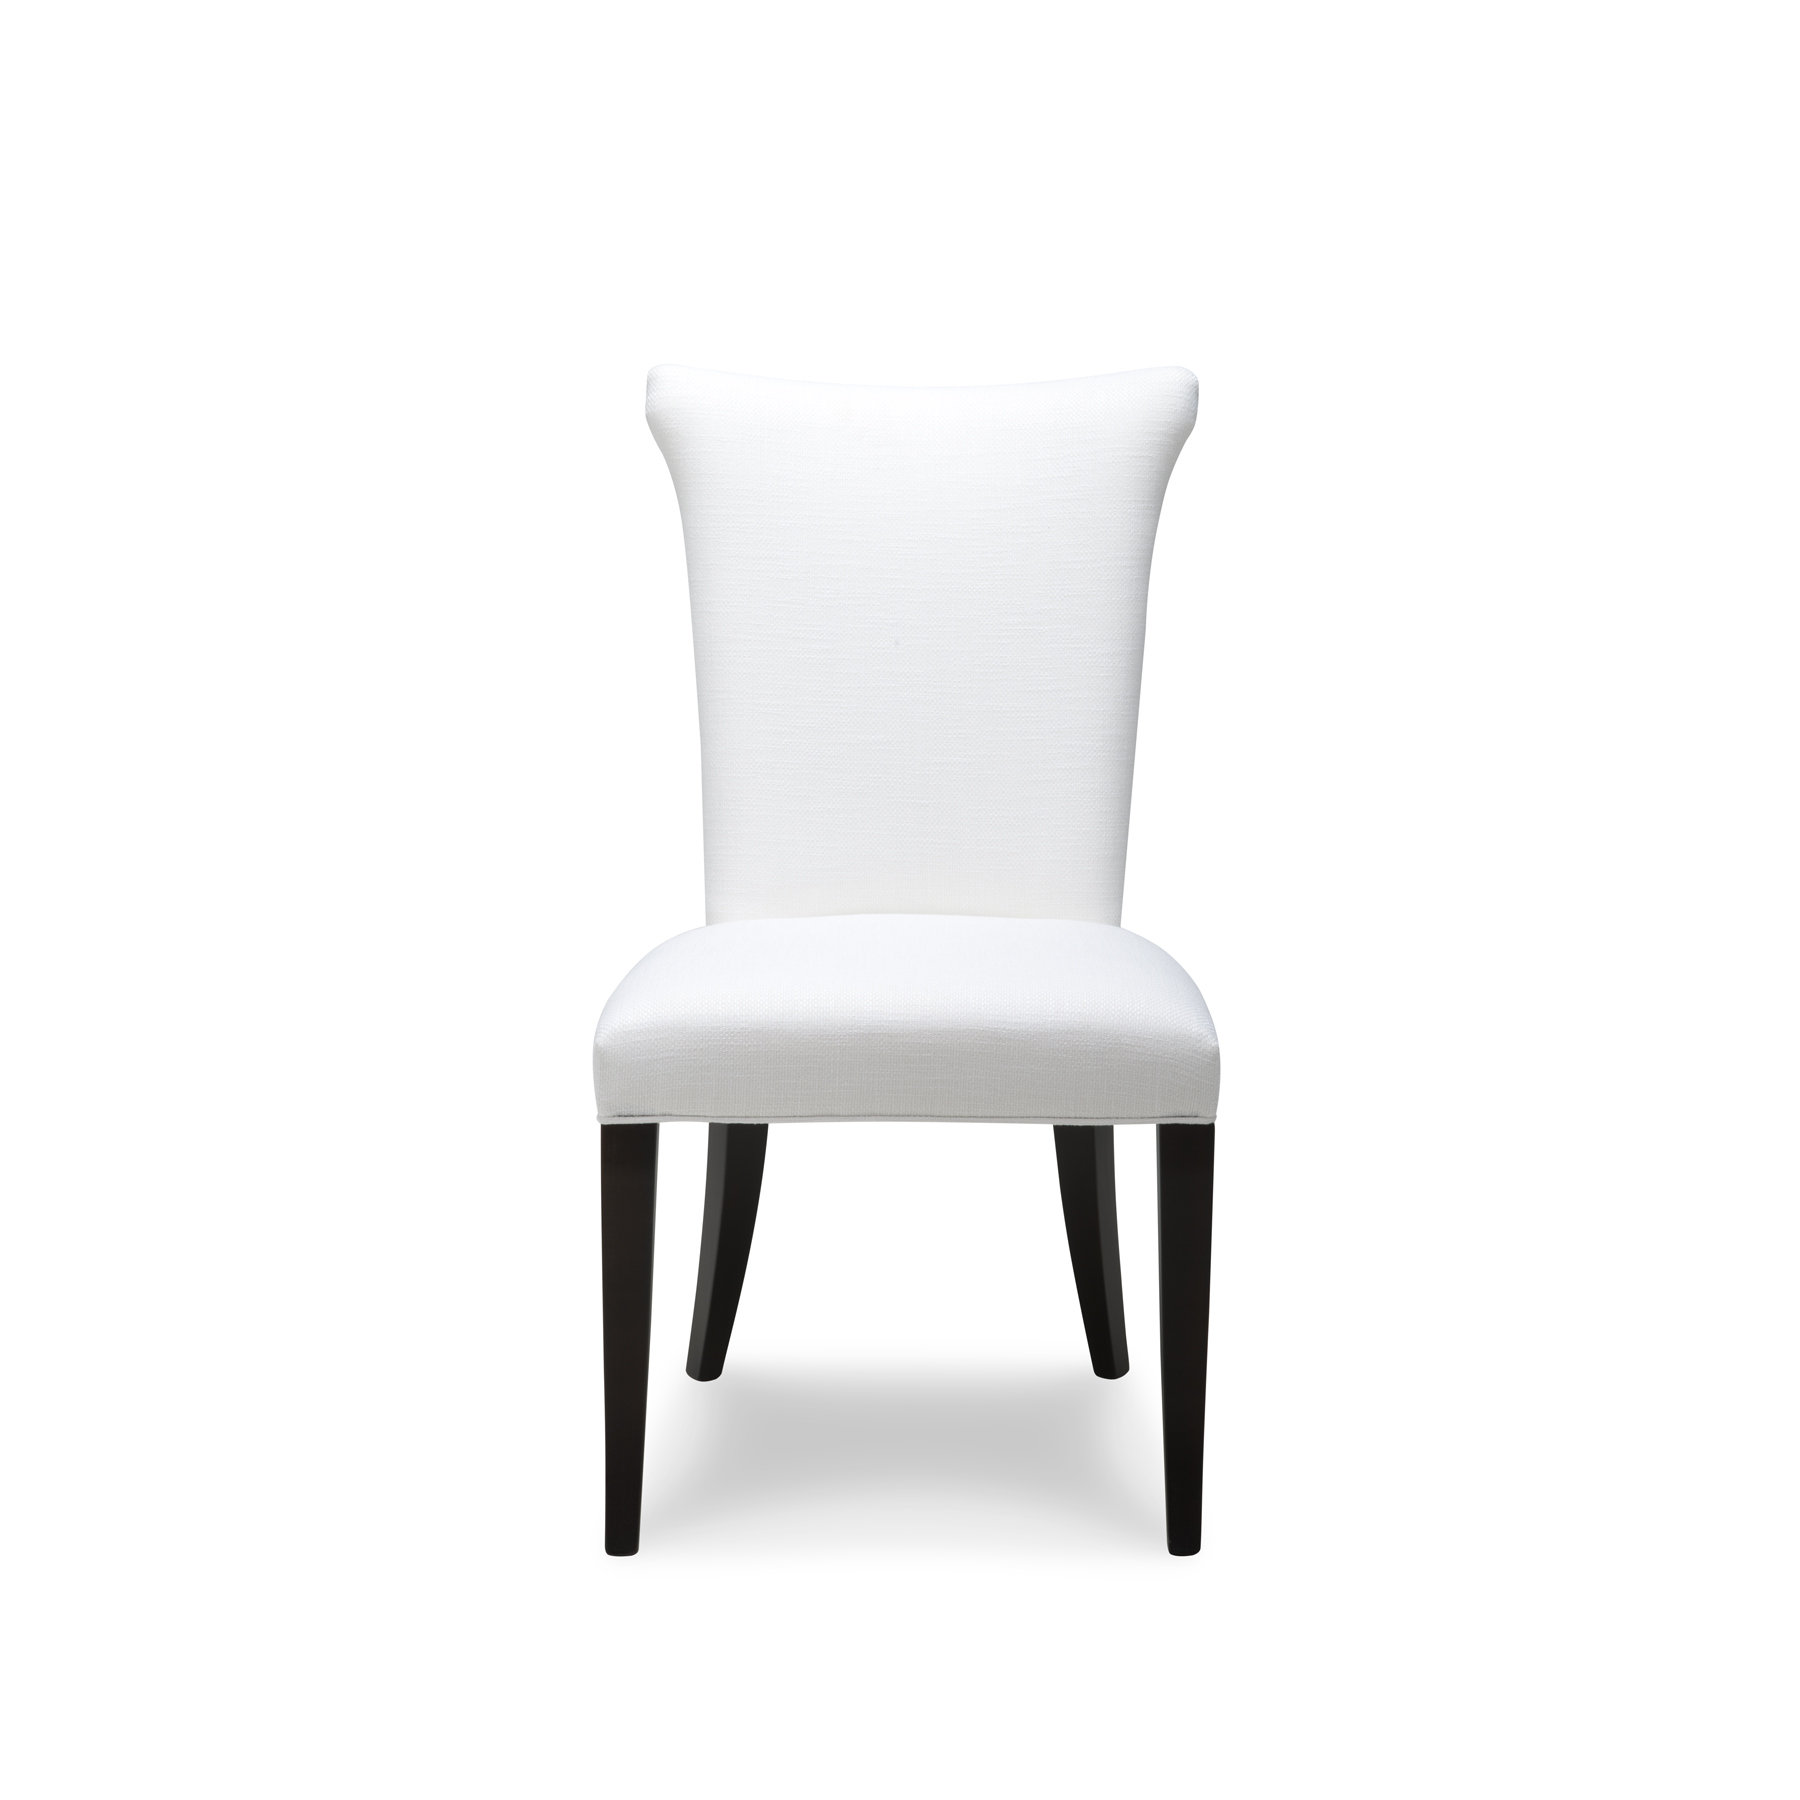 Regal-Chair-A-PROOF-1-1.jpg